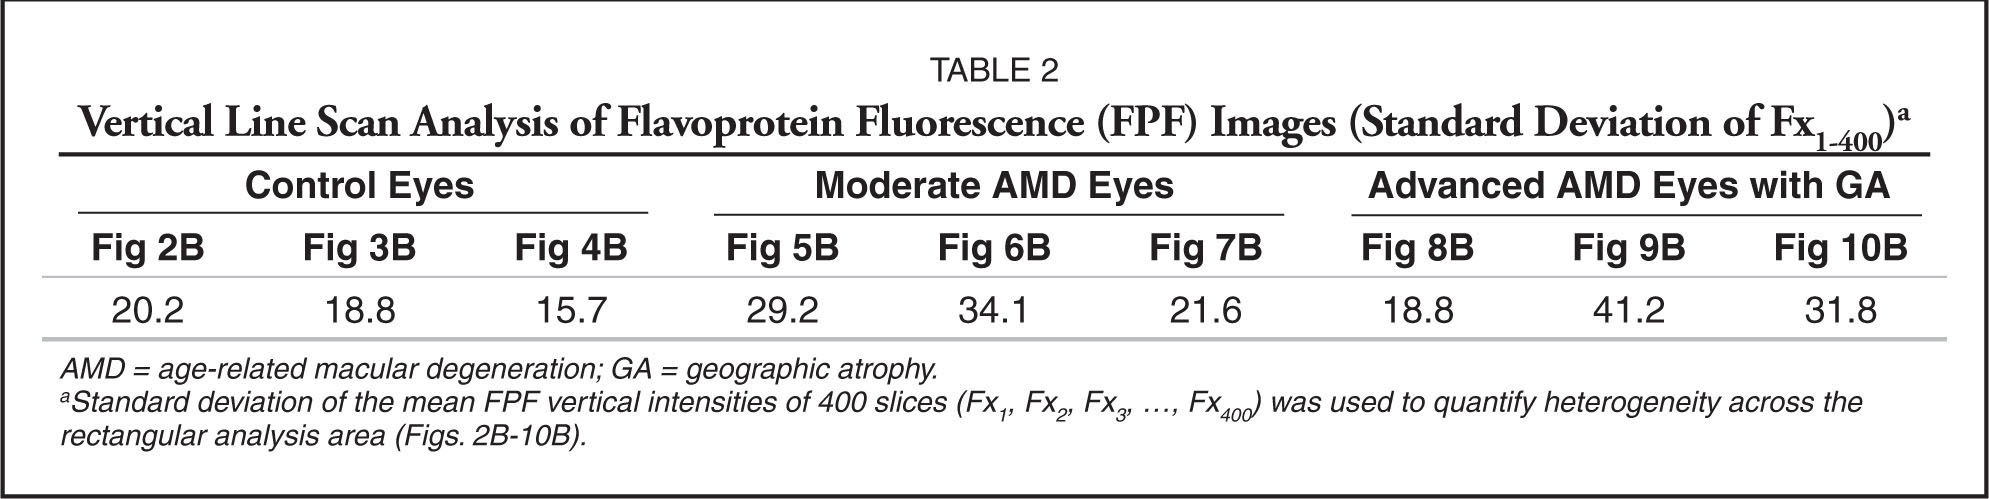 Vertical Line Scan Analysis of Flavoprotein Fluorescence (FPF) Images (Standard Deviation of Fx1–400)a